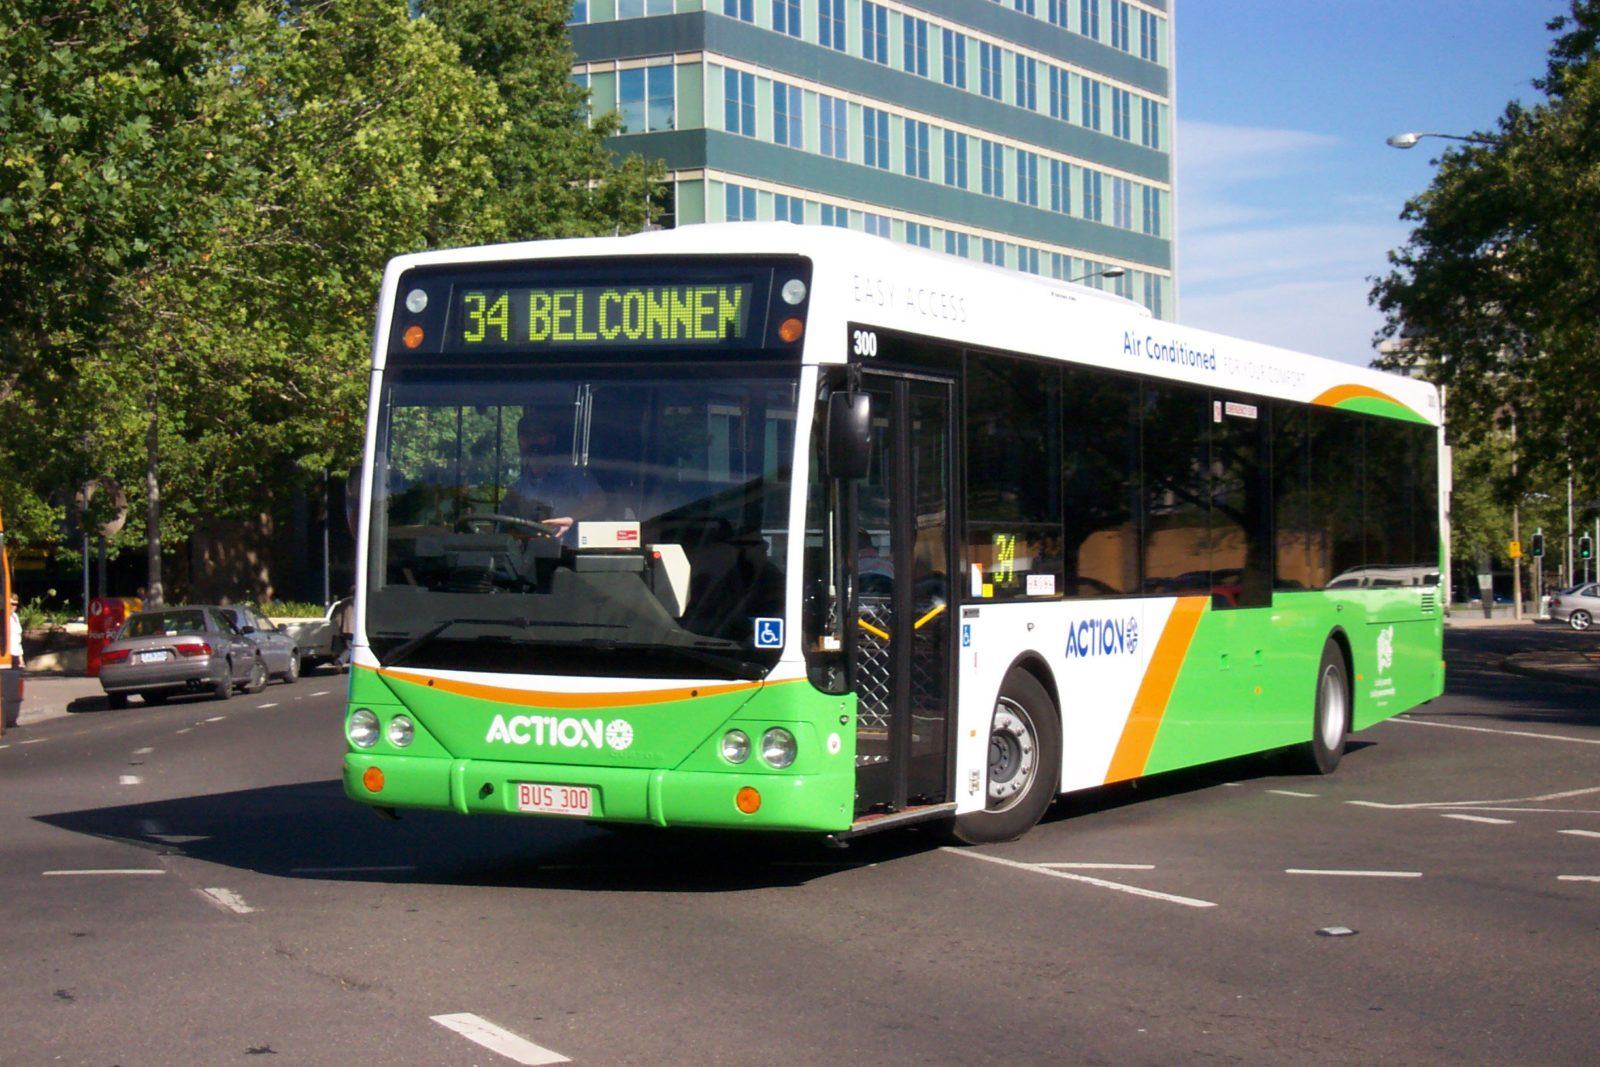 Action bus in the city